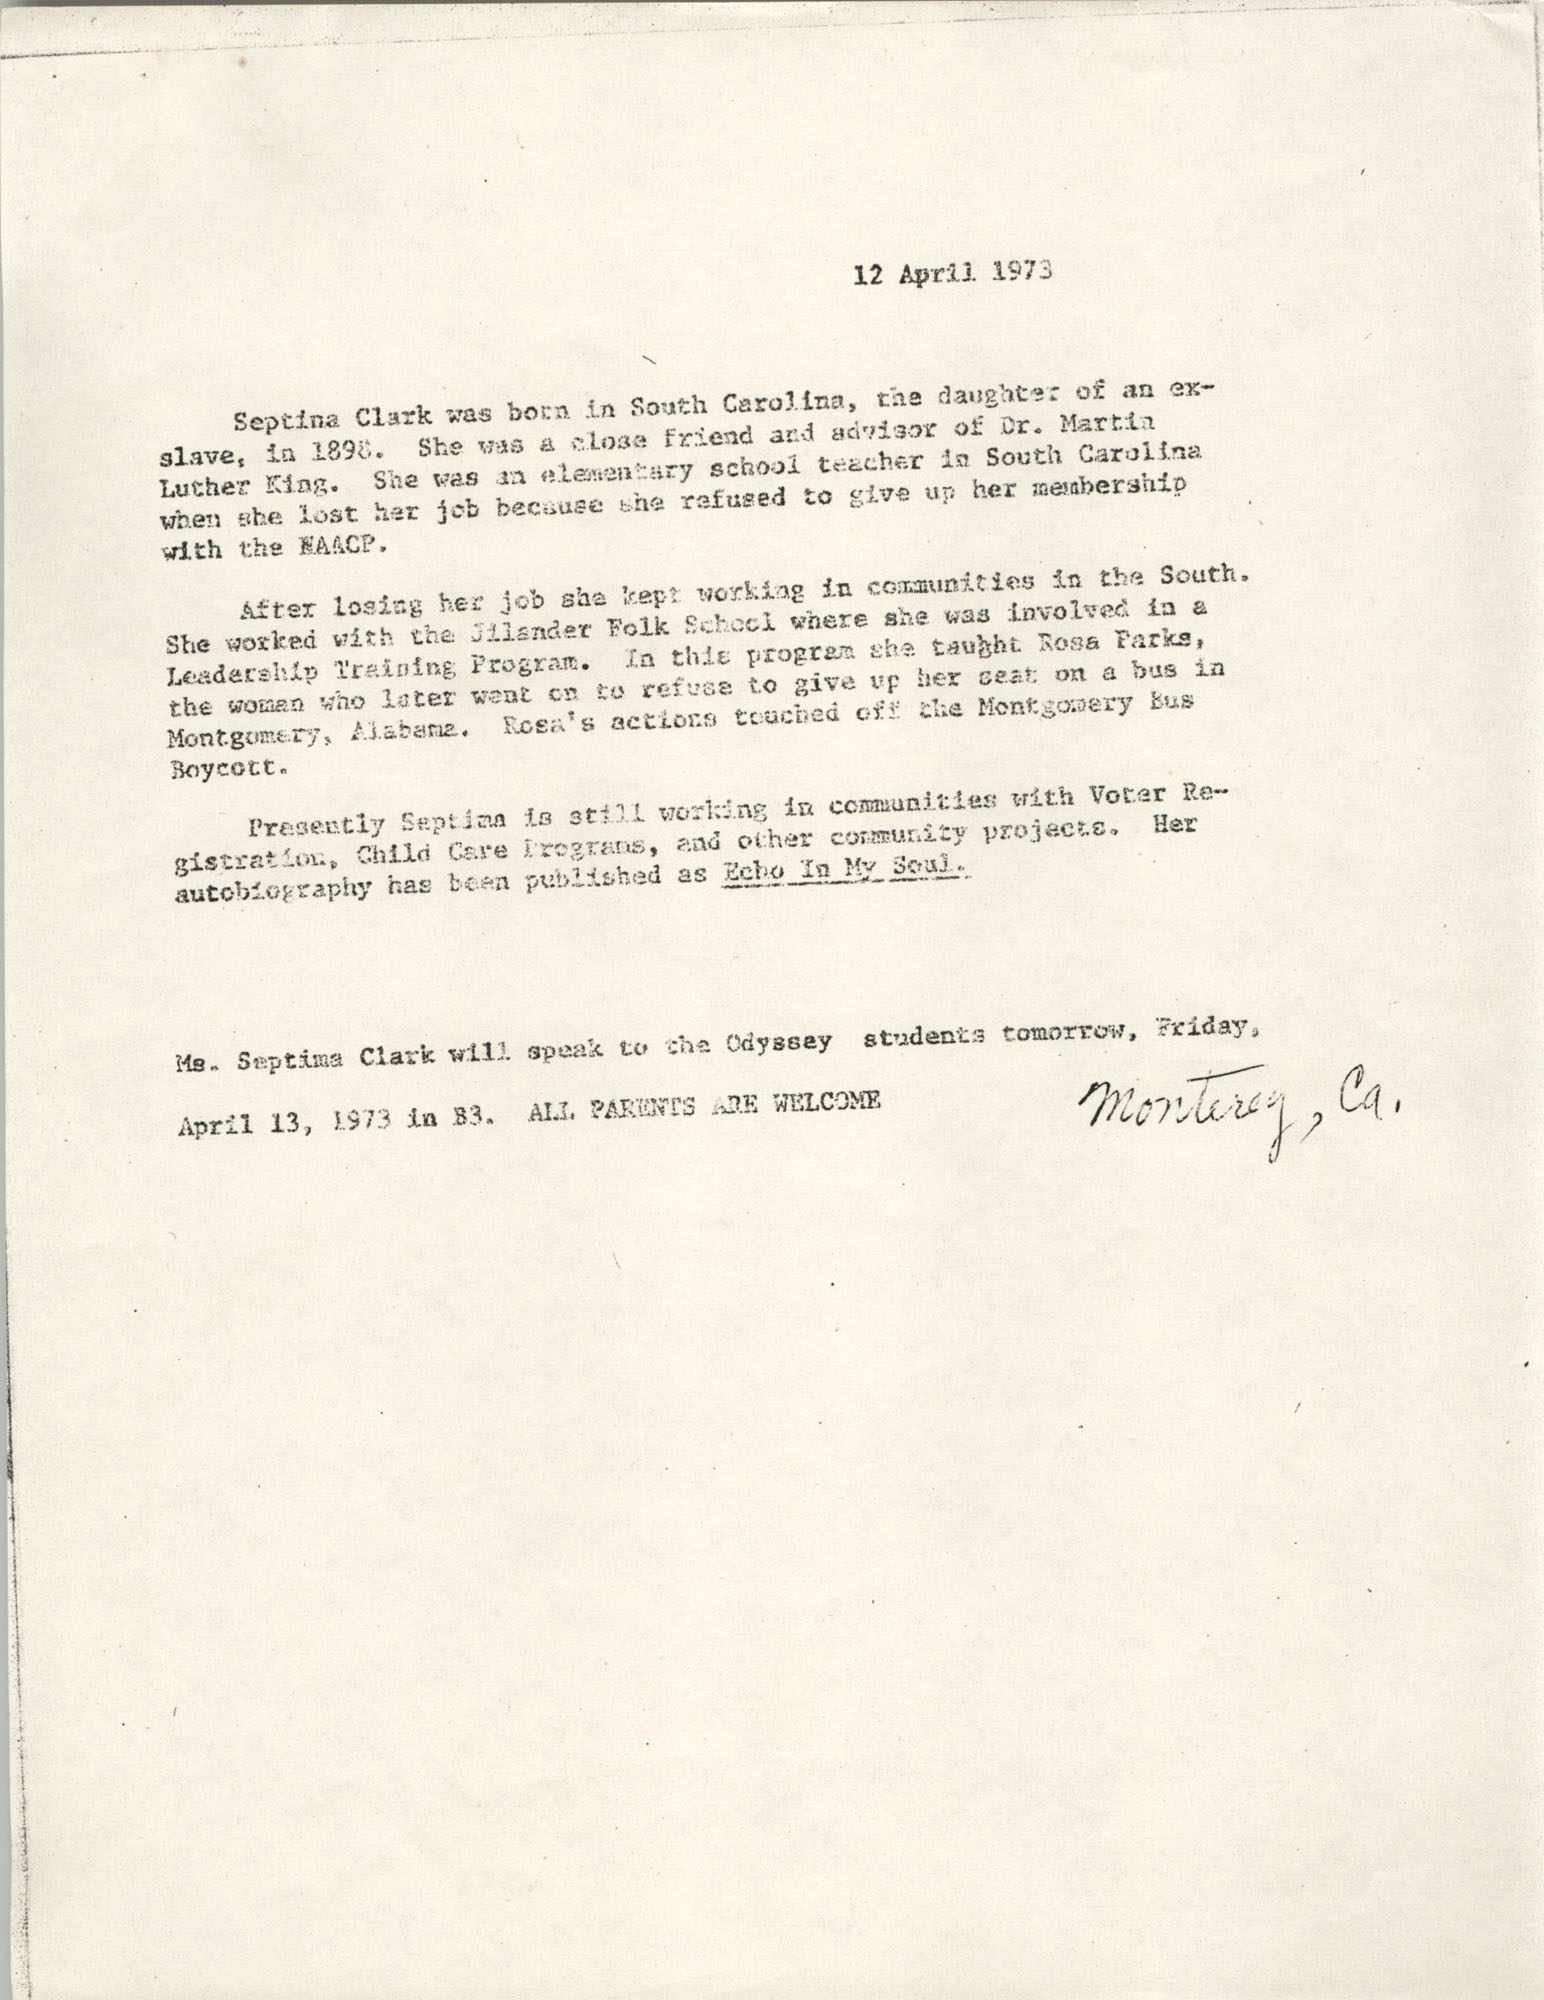 Biographical Sketch of Septima P. Clark for Odyssey students, April 13, 1973